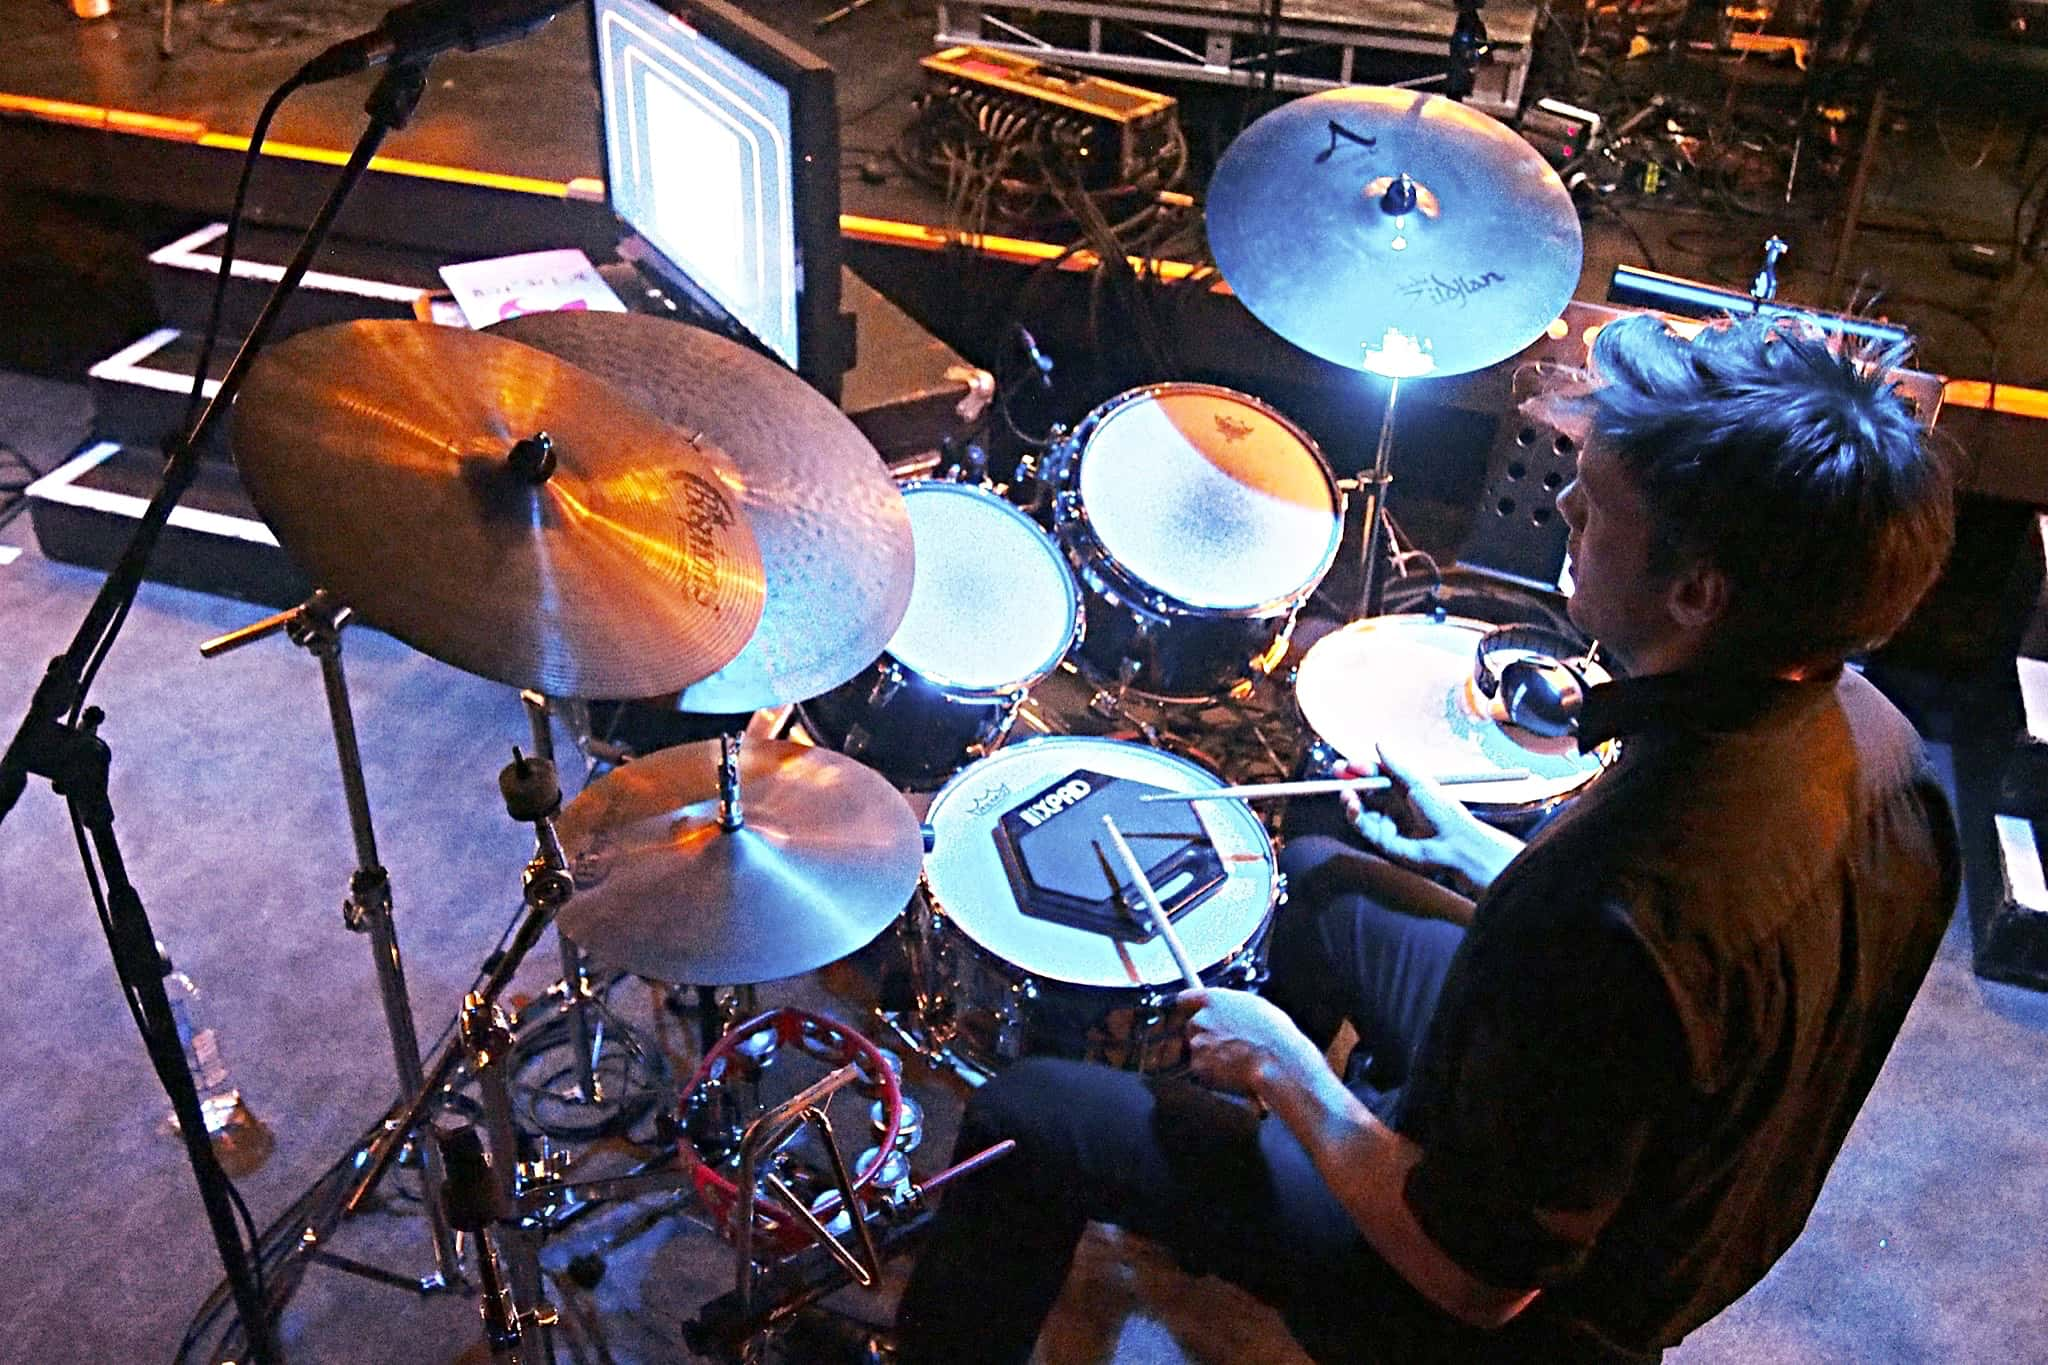 Tim Sellars' drum set setup for Hairspray at the Isaac Theatre Royal in Christchurch, New Zealand, for Showbiz Christchurch.